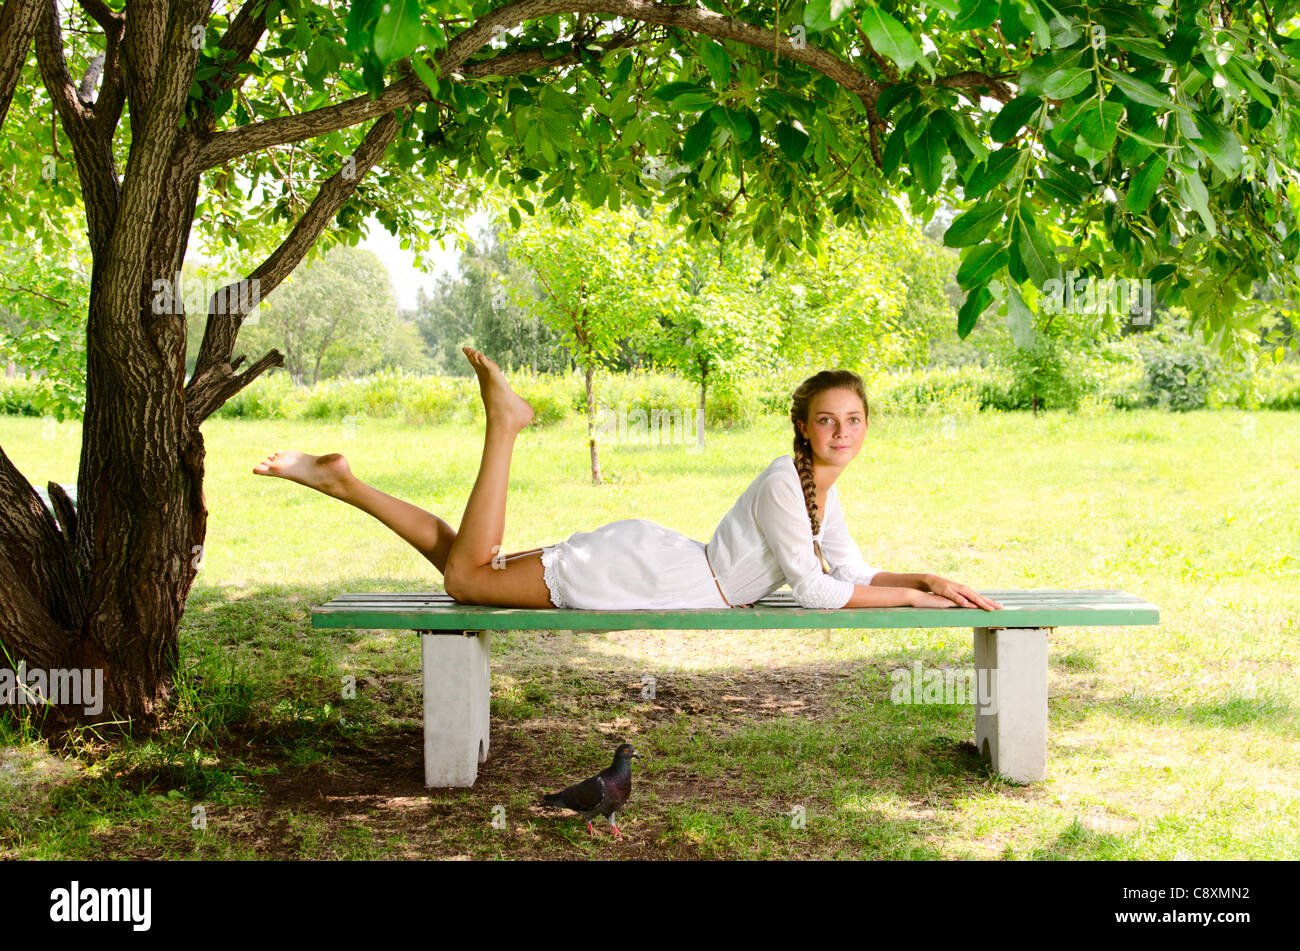 https://c8.alamy.com/comp/C8XMN2/pretty-barefooted-woman-is-laying-on-a-bench-under-the-green-tree-C8XMN2.jpg